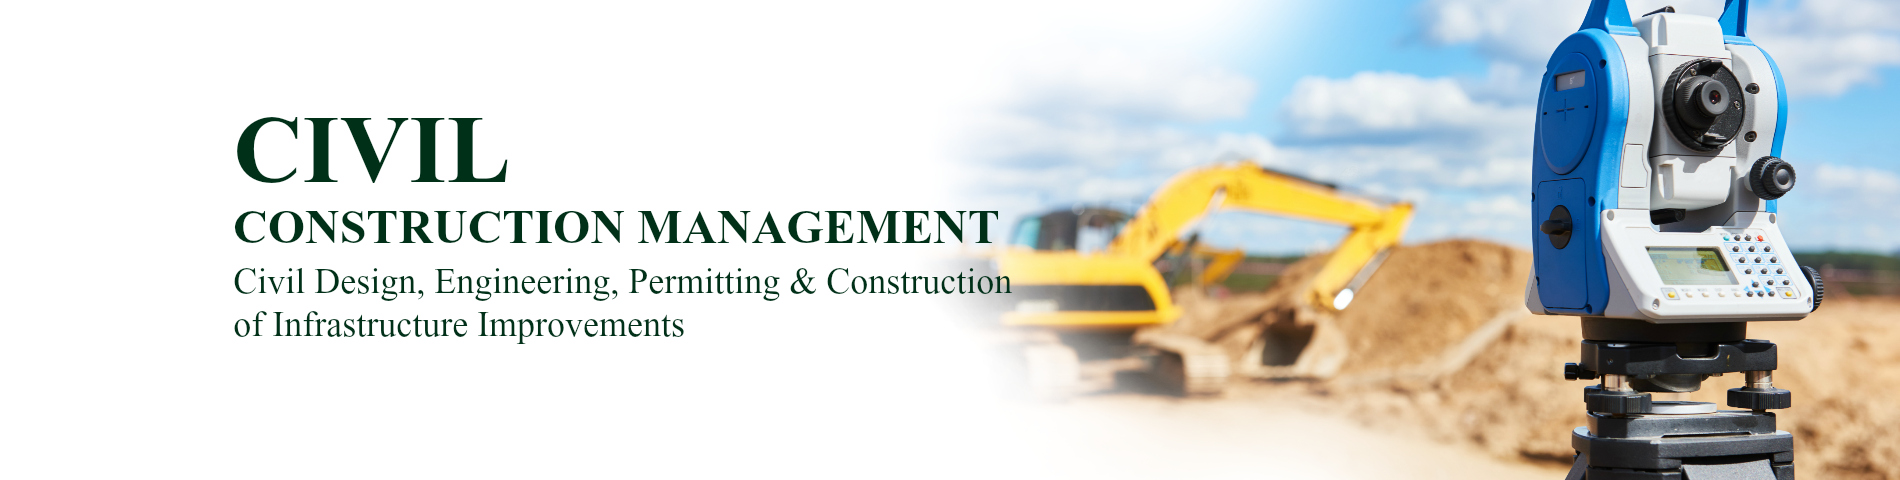 Civil Construction Management | Signature Land Inc